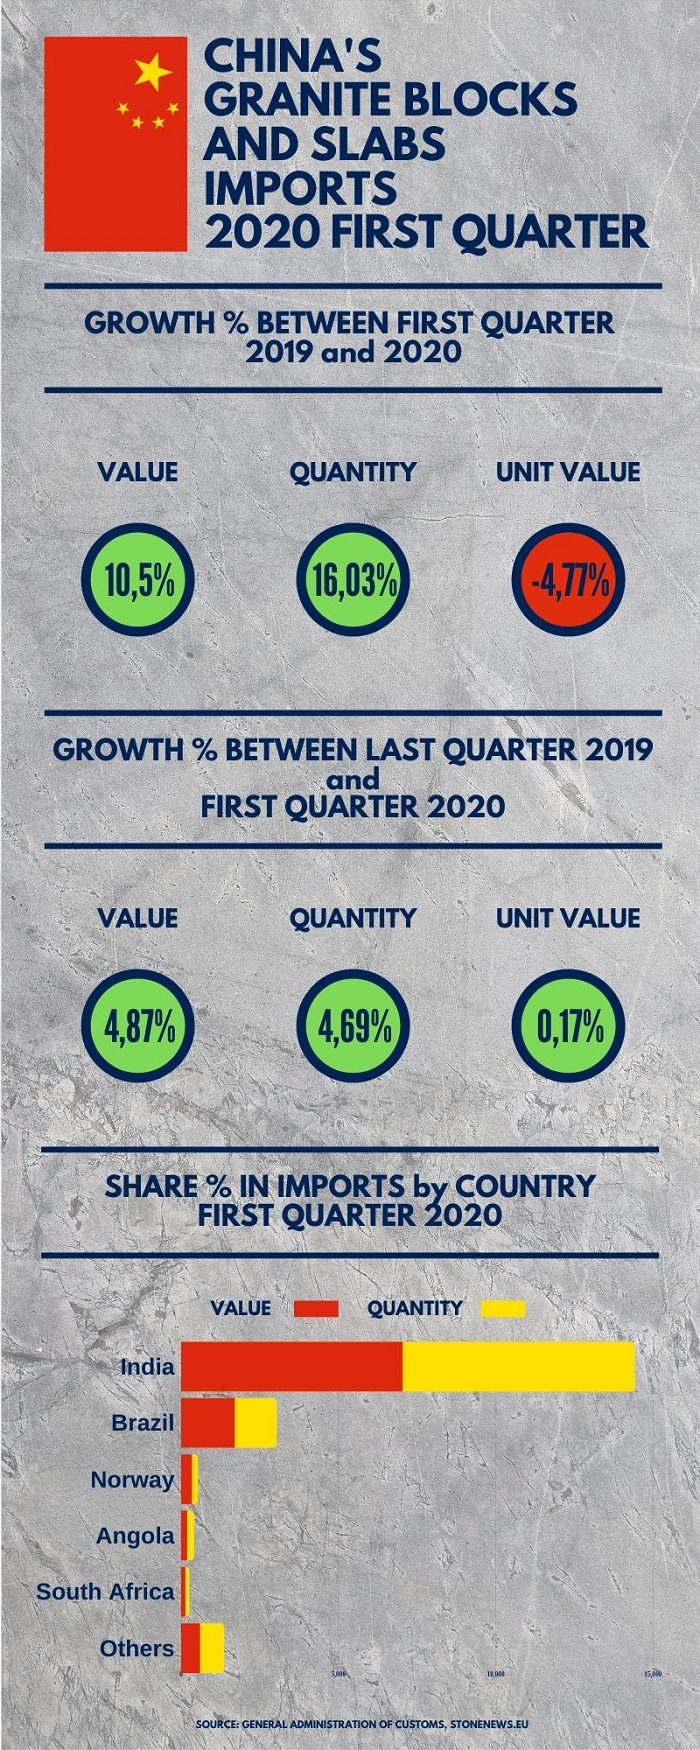 Chinese Granite Blocks and Slabs Imports Growth - 1st Quarter 2020